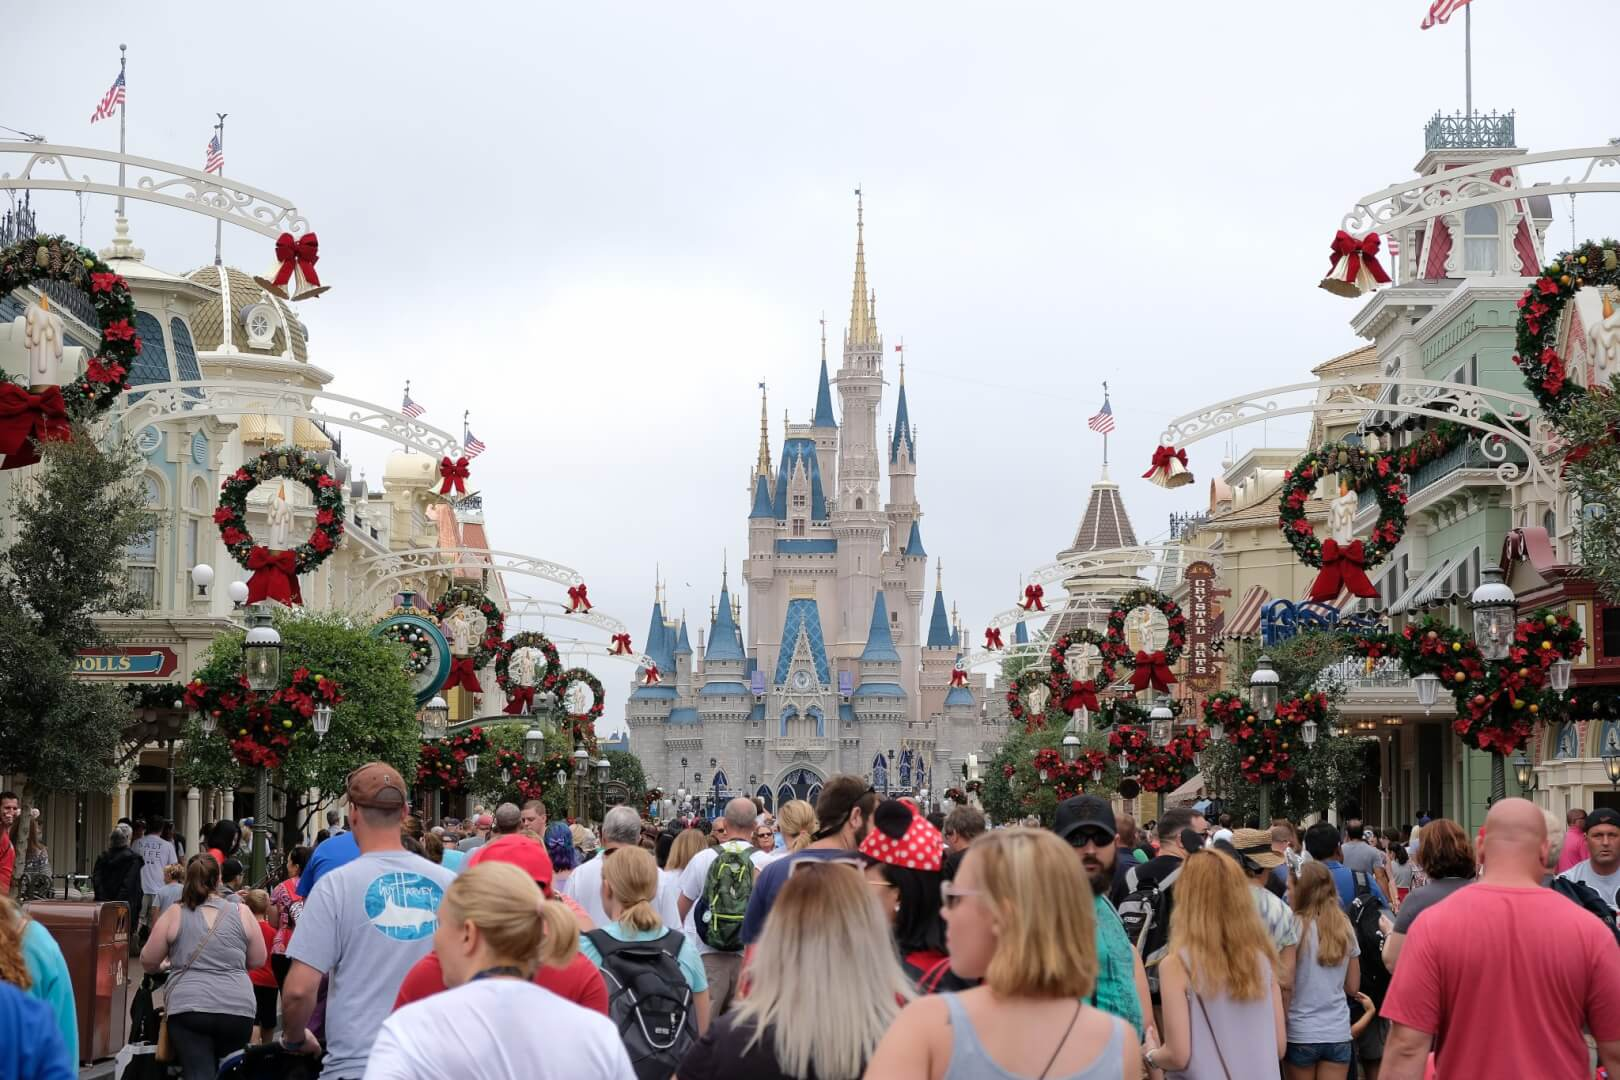 Christmas 2017 Decorations arrive as Magic Kingdom ...